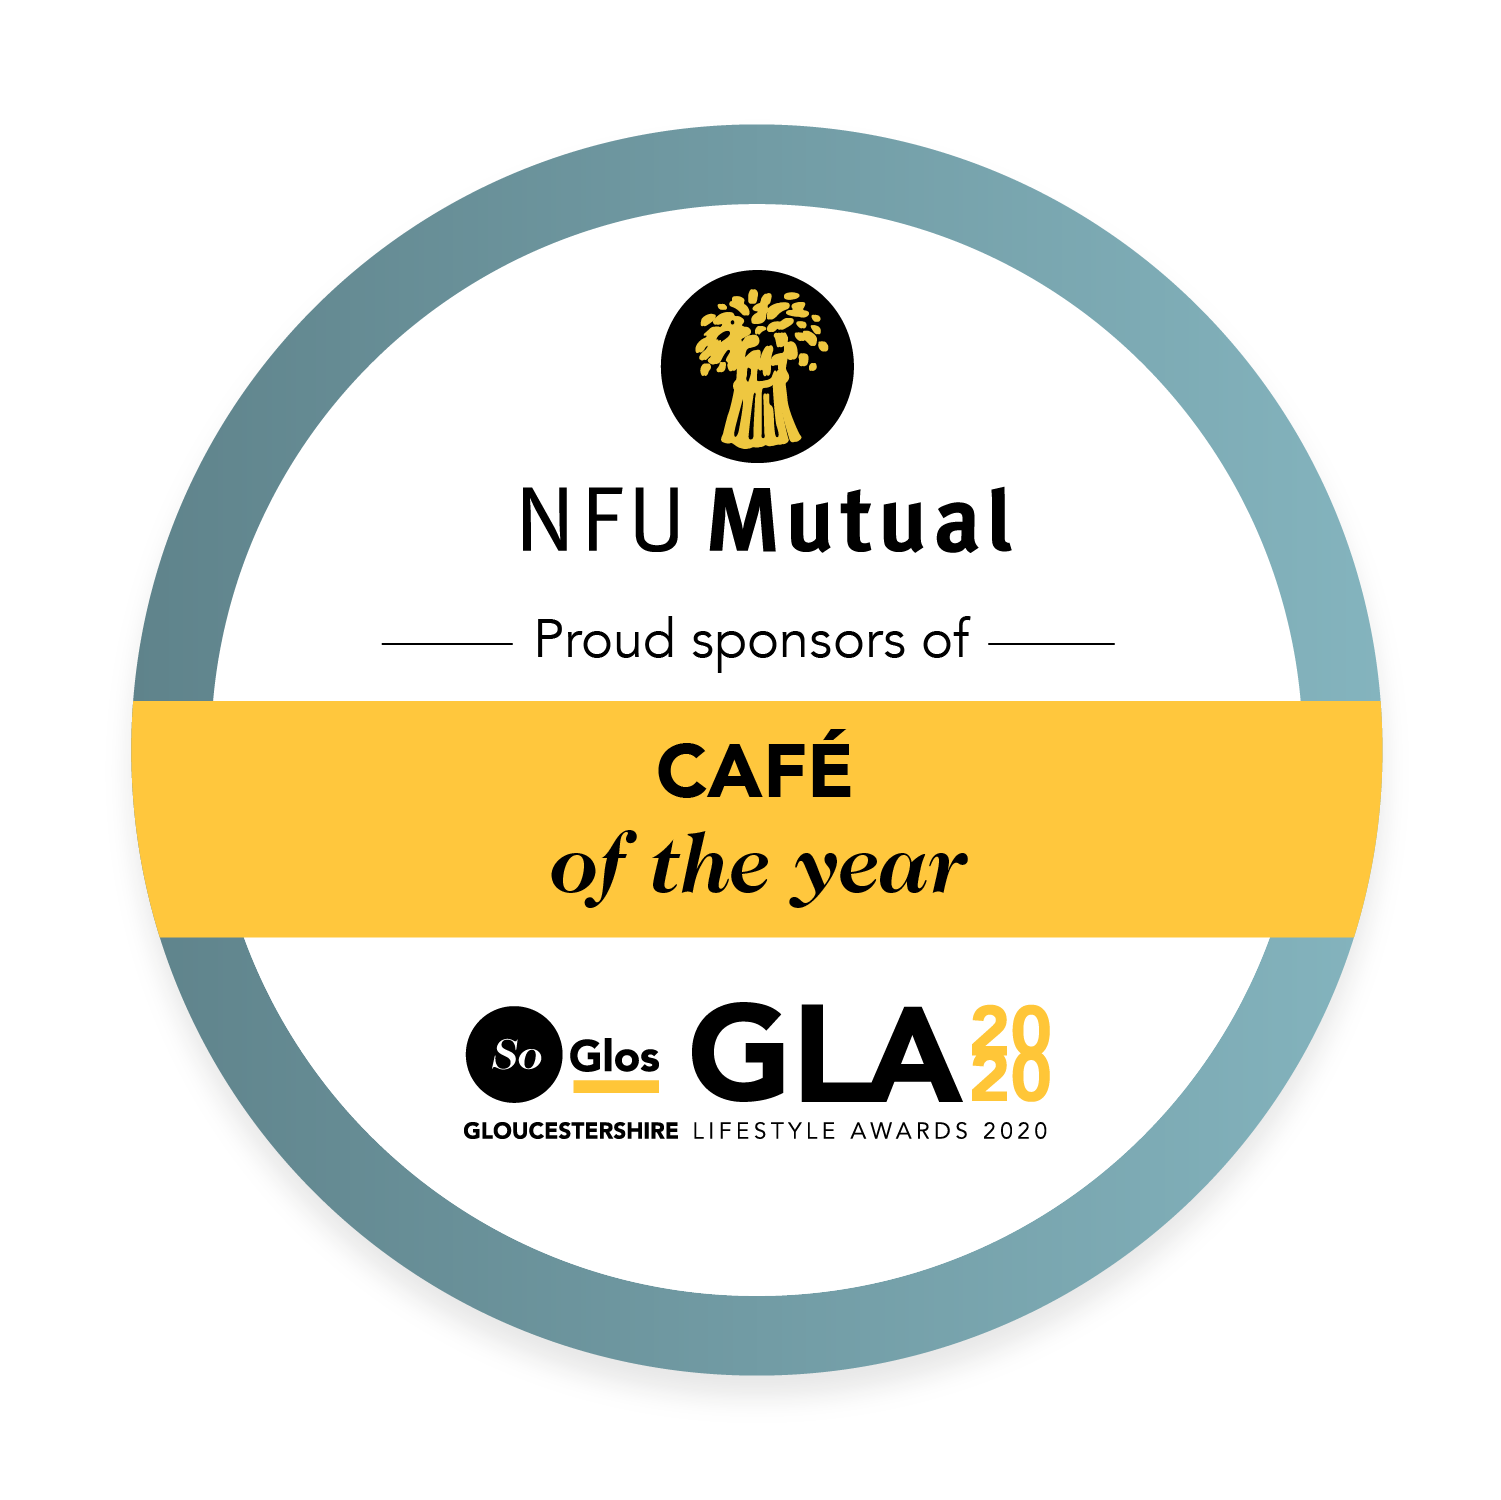 Café of the Year